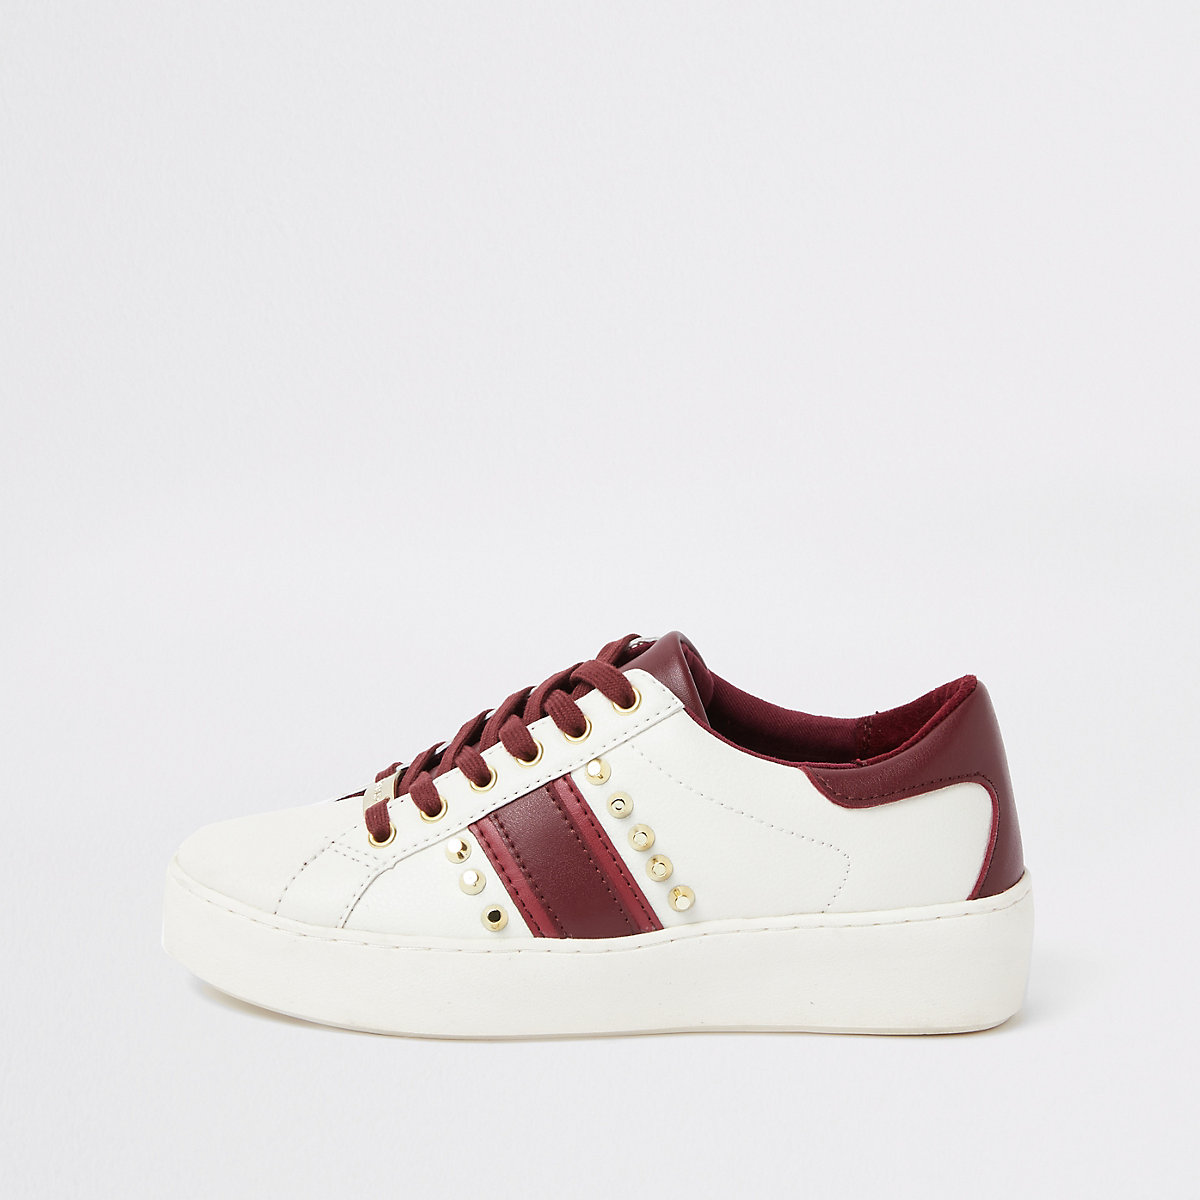 White studded lace-up side stripe sneakers